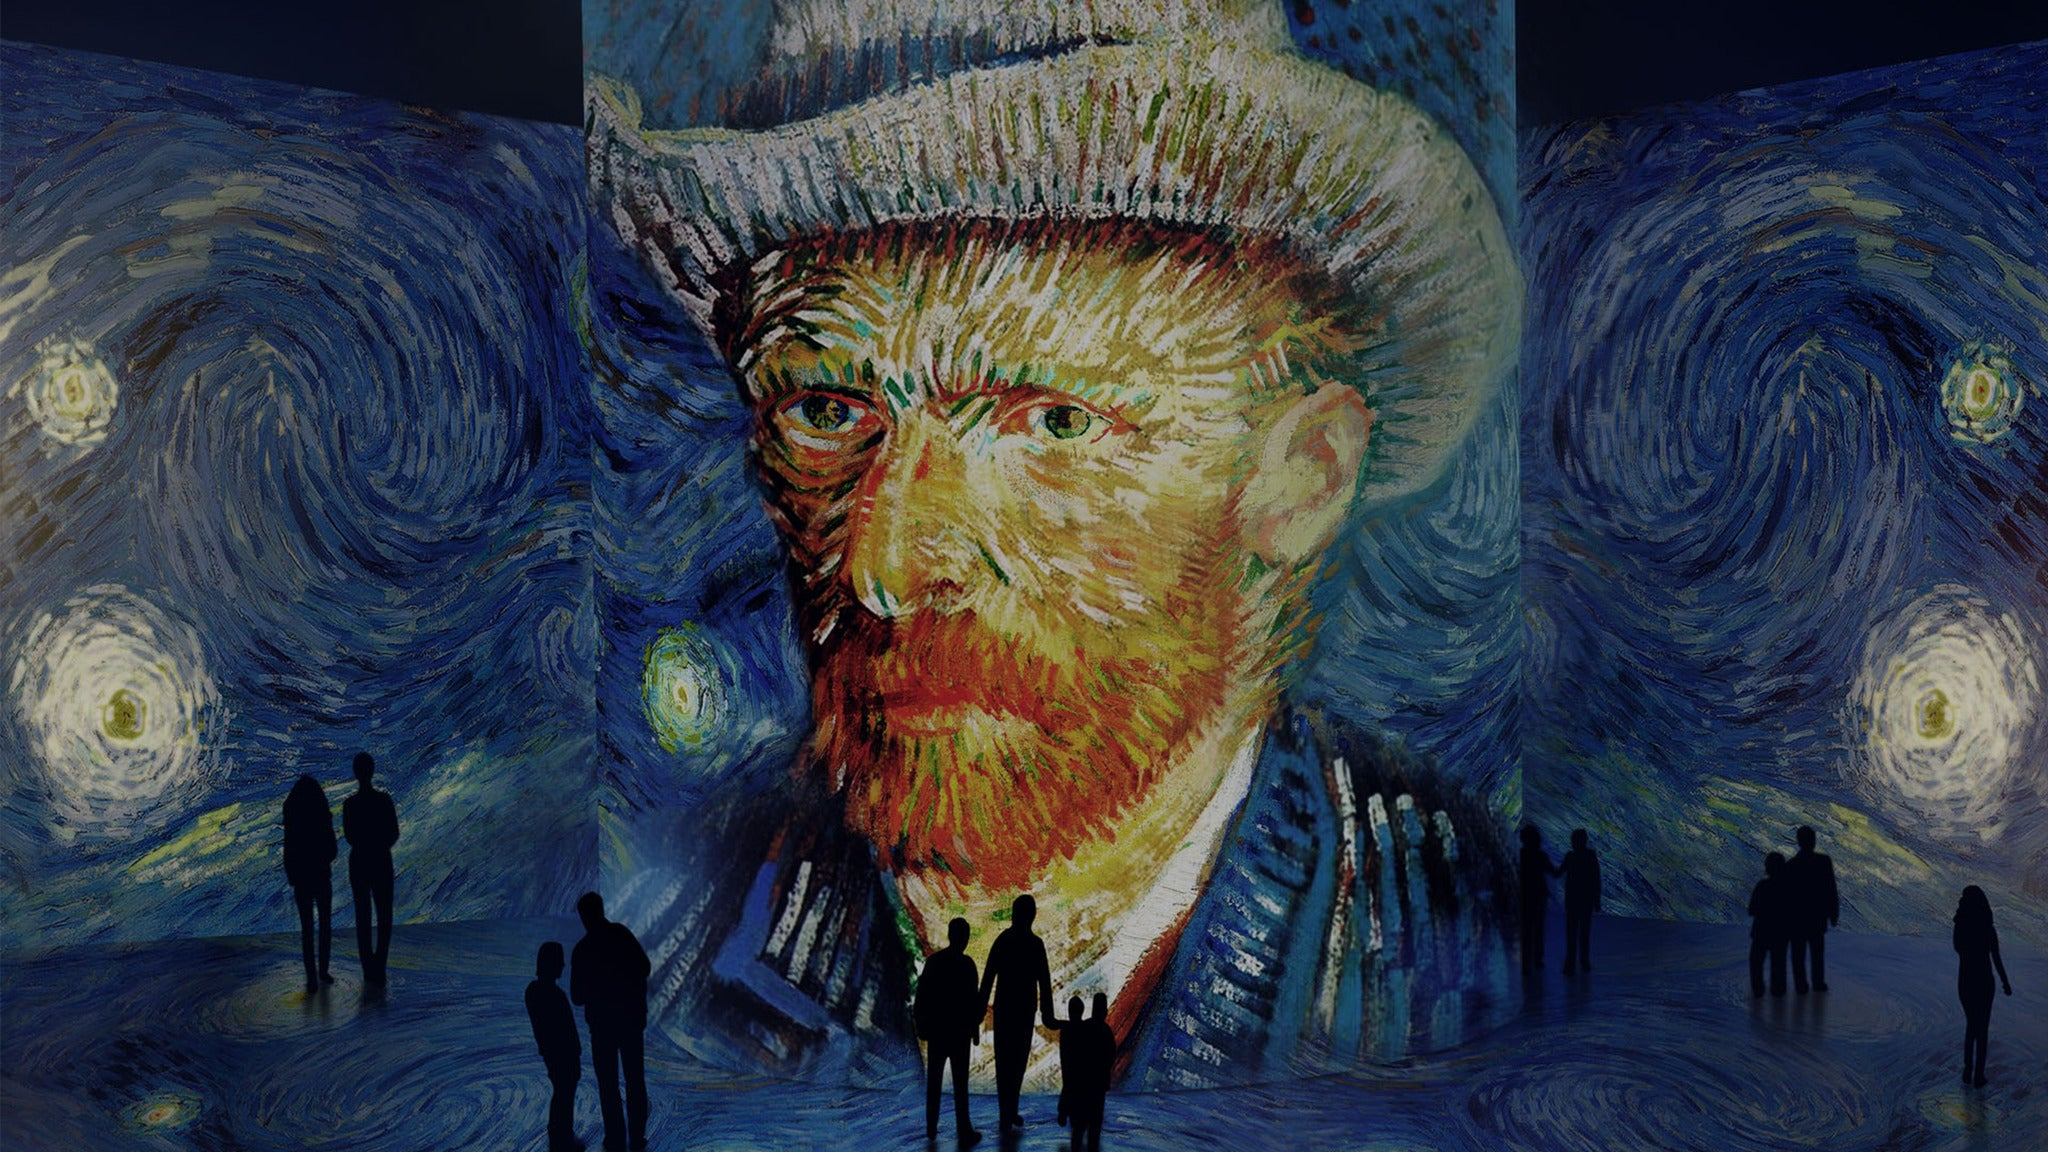 Immersive Van Gogh (Off-Peak) at Lighthouse ArtSpace Chicago - Chicago, IL 60610